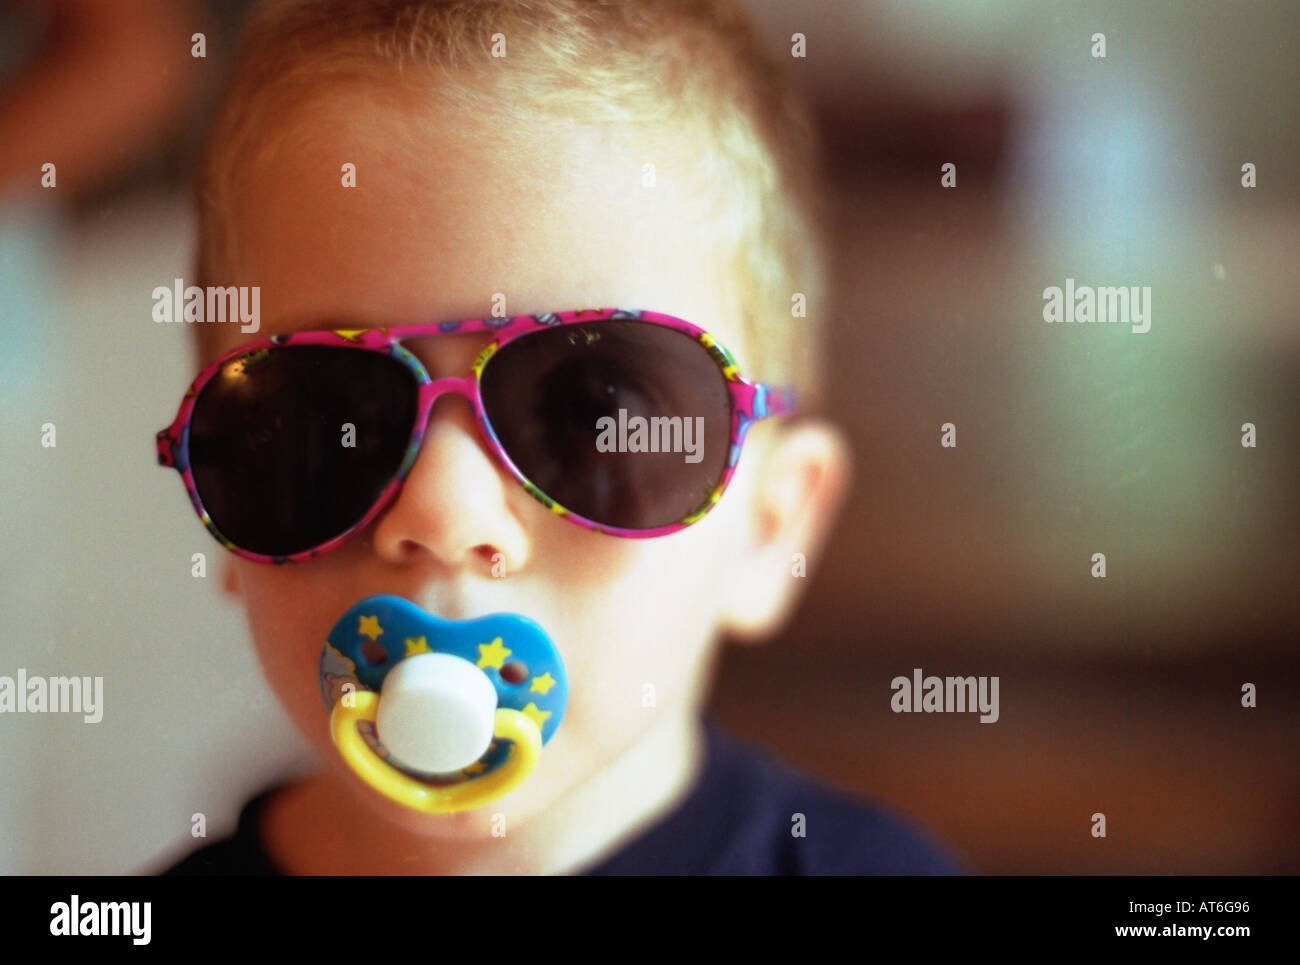 b0ca746dbe79 2 or 3 year old blond boy sucking dummy and wearing sunglasses Stock ...